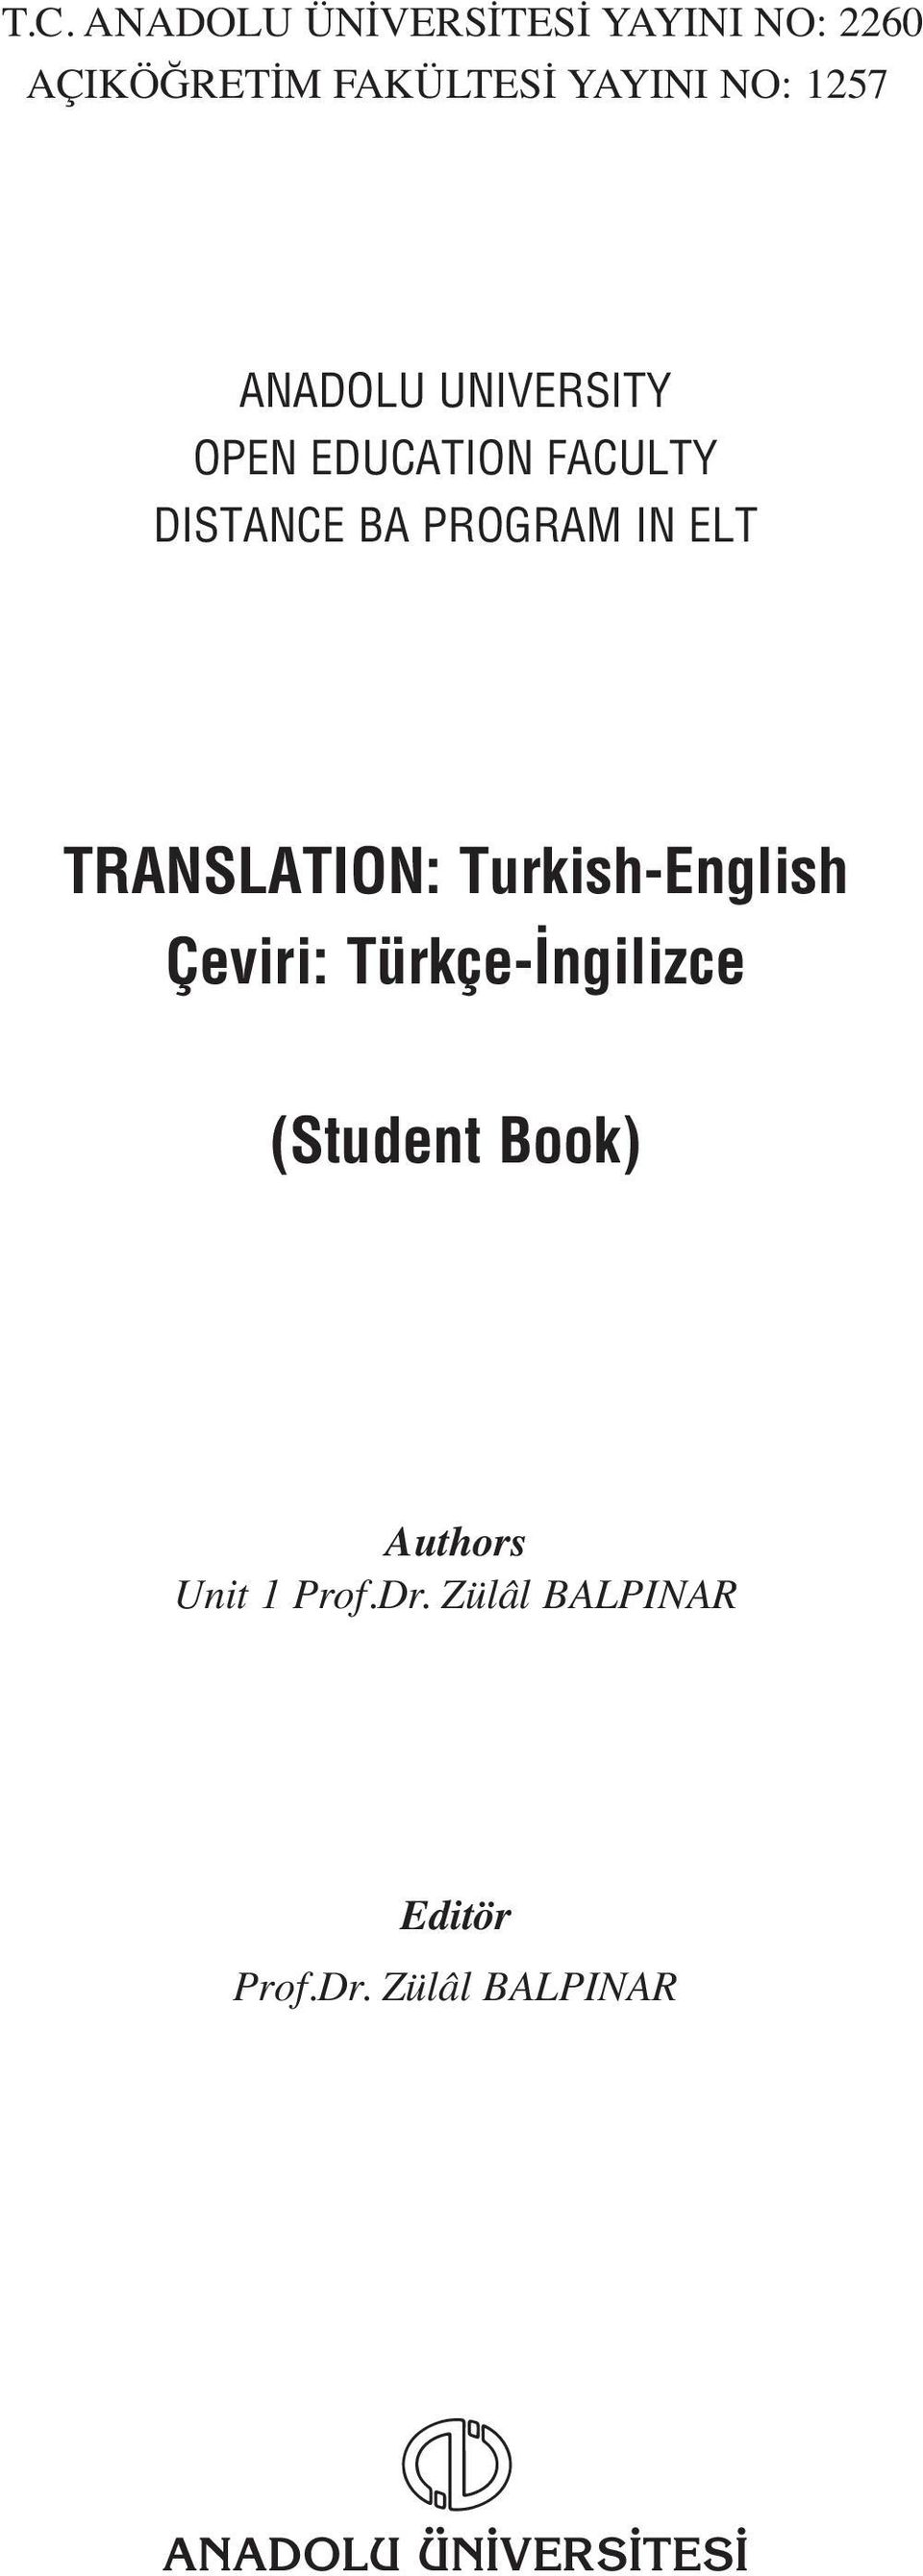 TRANSLATION: Turkish-English Çeviri: Türkçe- ngilizce (Student Book) Authors